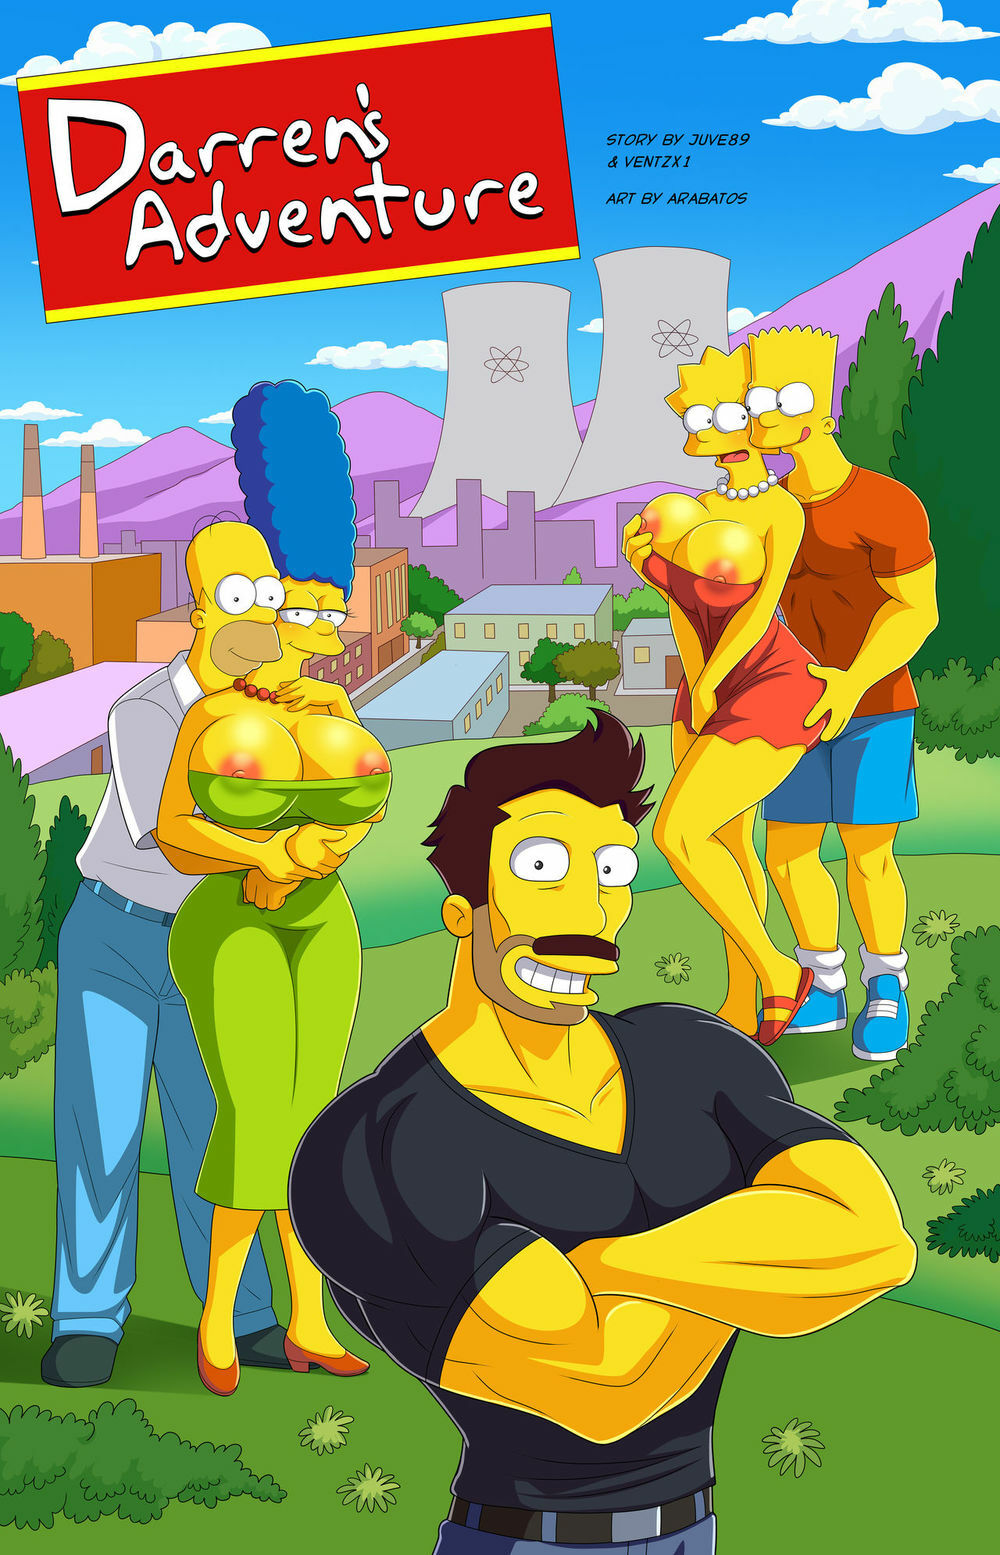 Seems remarkable simpson do video porno opinion you are